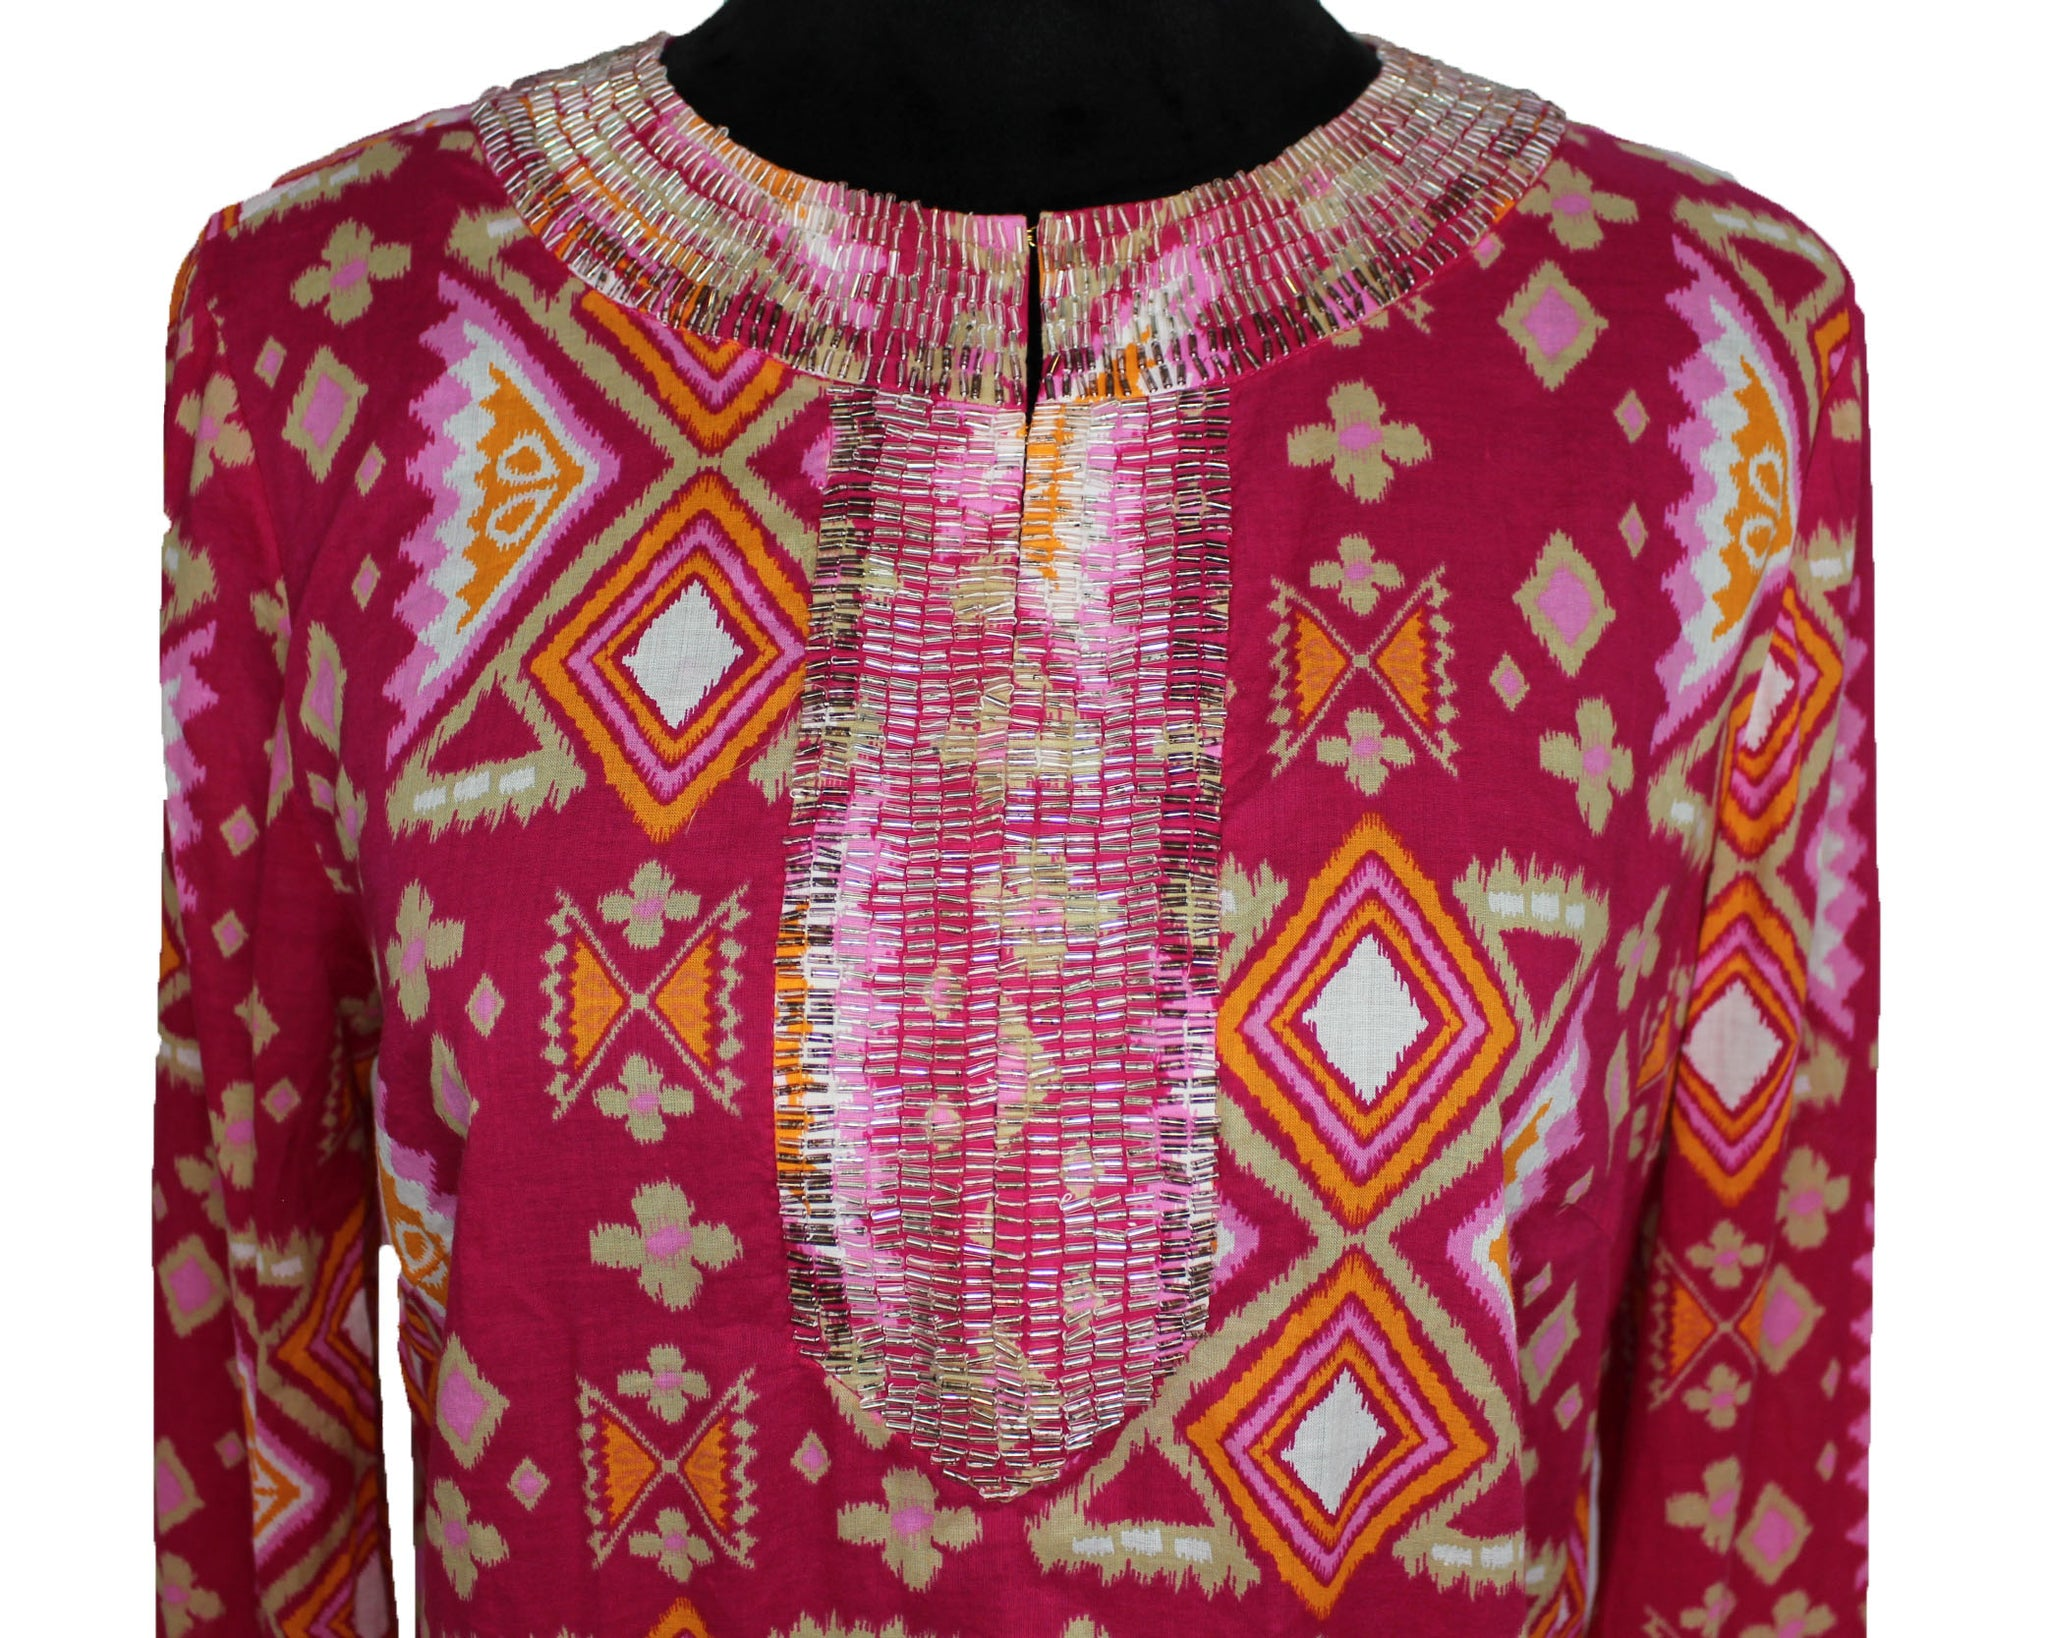 Tory Burch Embellished Cover Up Dress